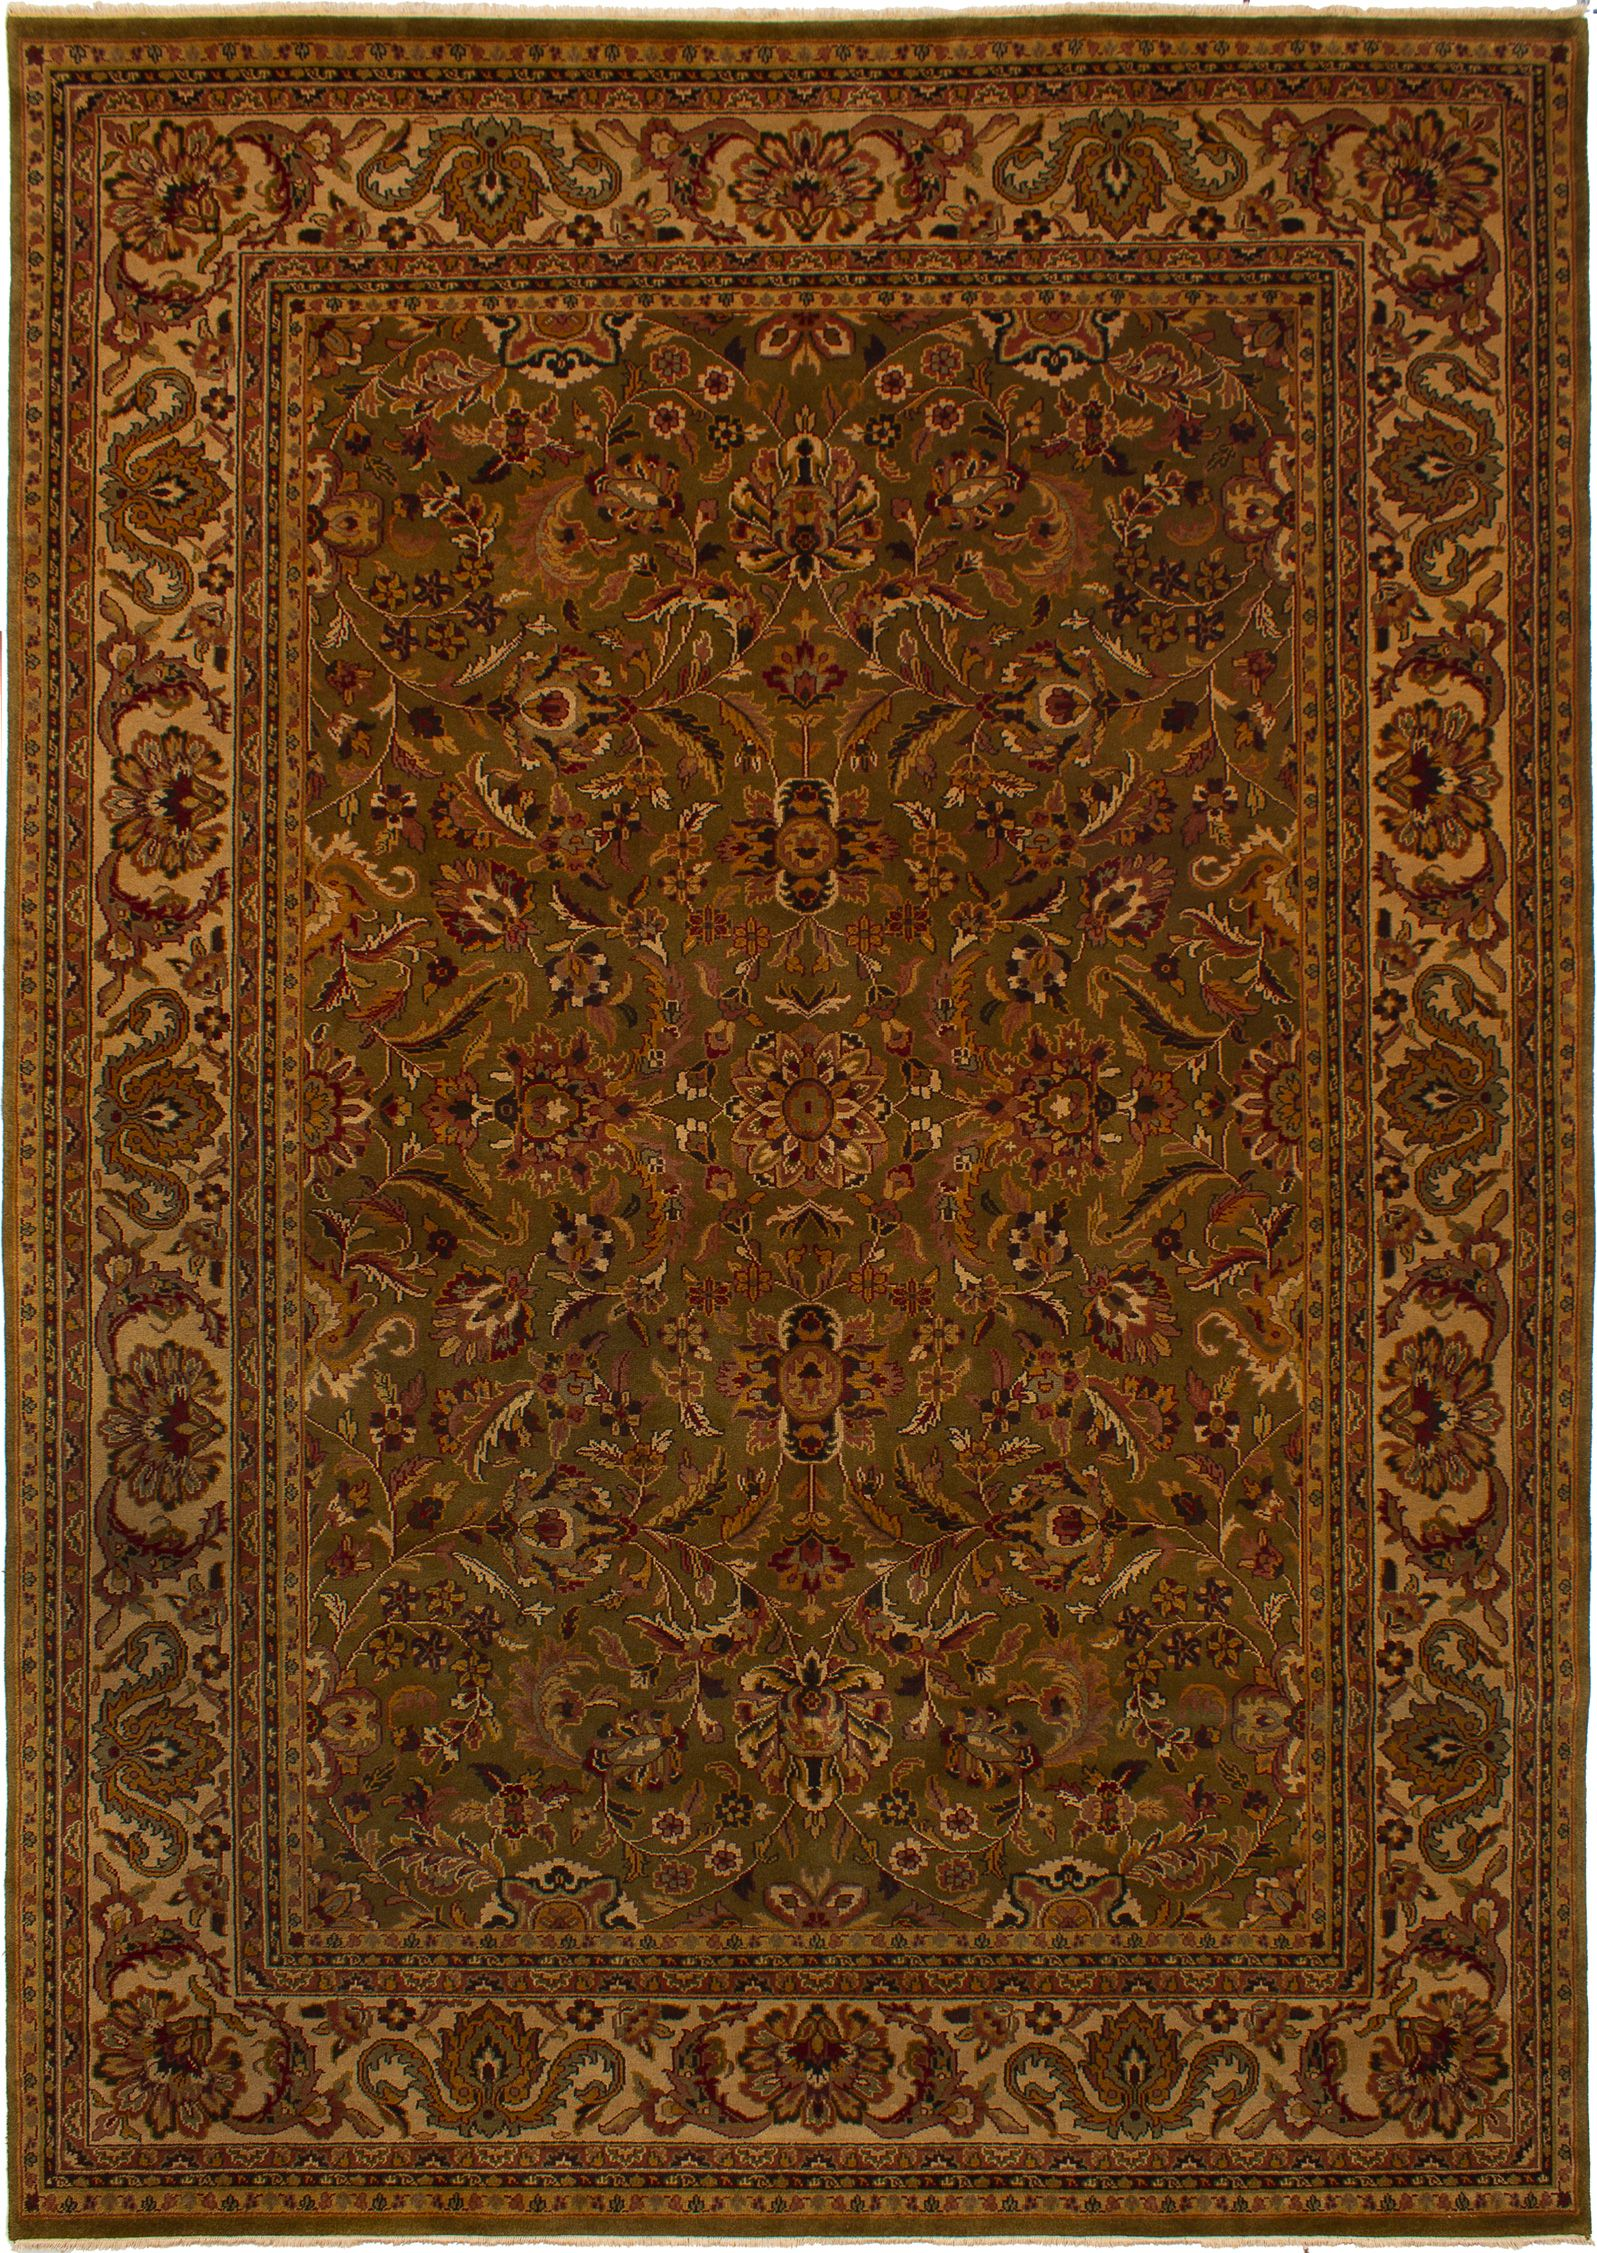 """Hand-knotted Finest Agra Jaipur Dark Olive Green,  Wool Rug 9'8"""" x 13'8"""" Product Image"""